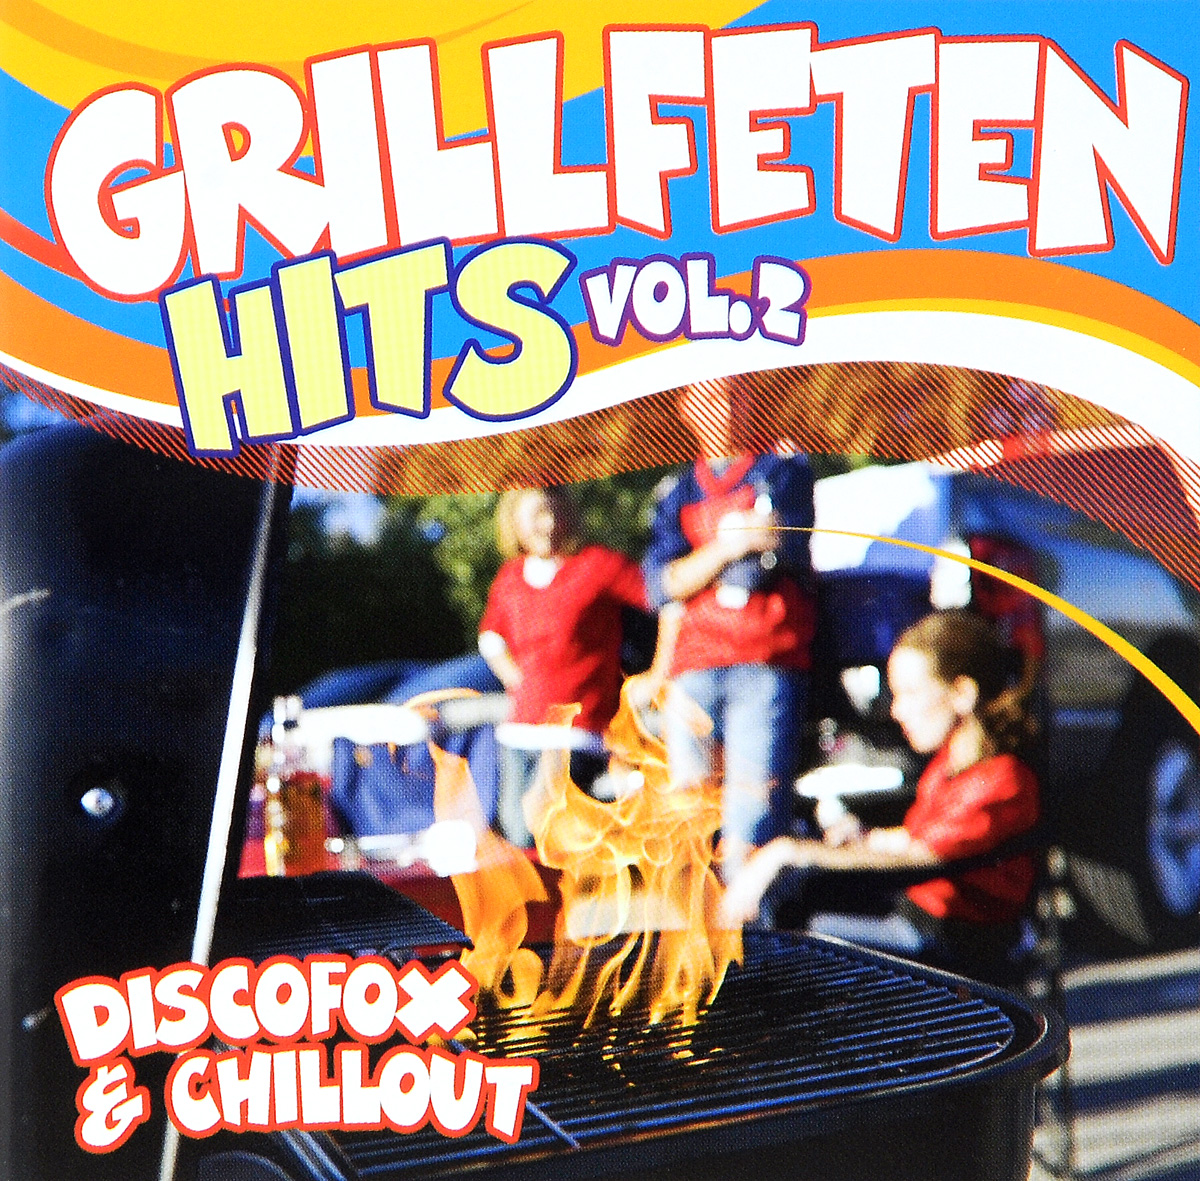 Grillfeten Hits. Vol. 2 (2 CD) астор пьяццолла карлос гардел анибал троило нелли омар альберто гомез tango hits 2 cd